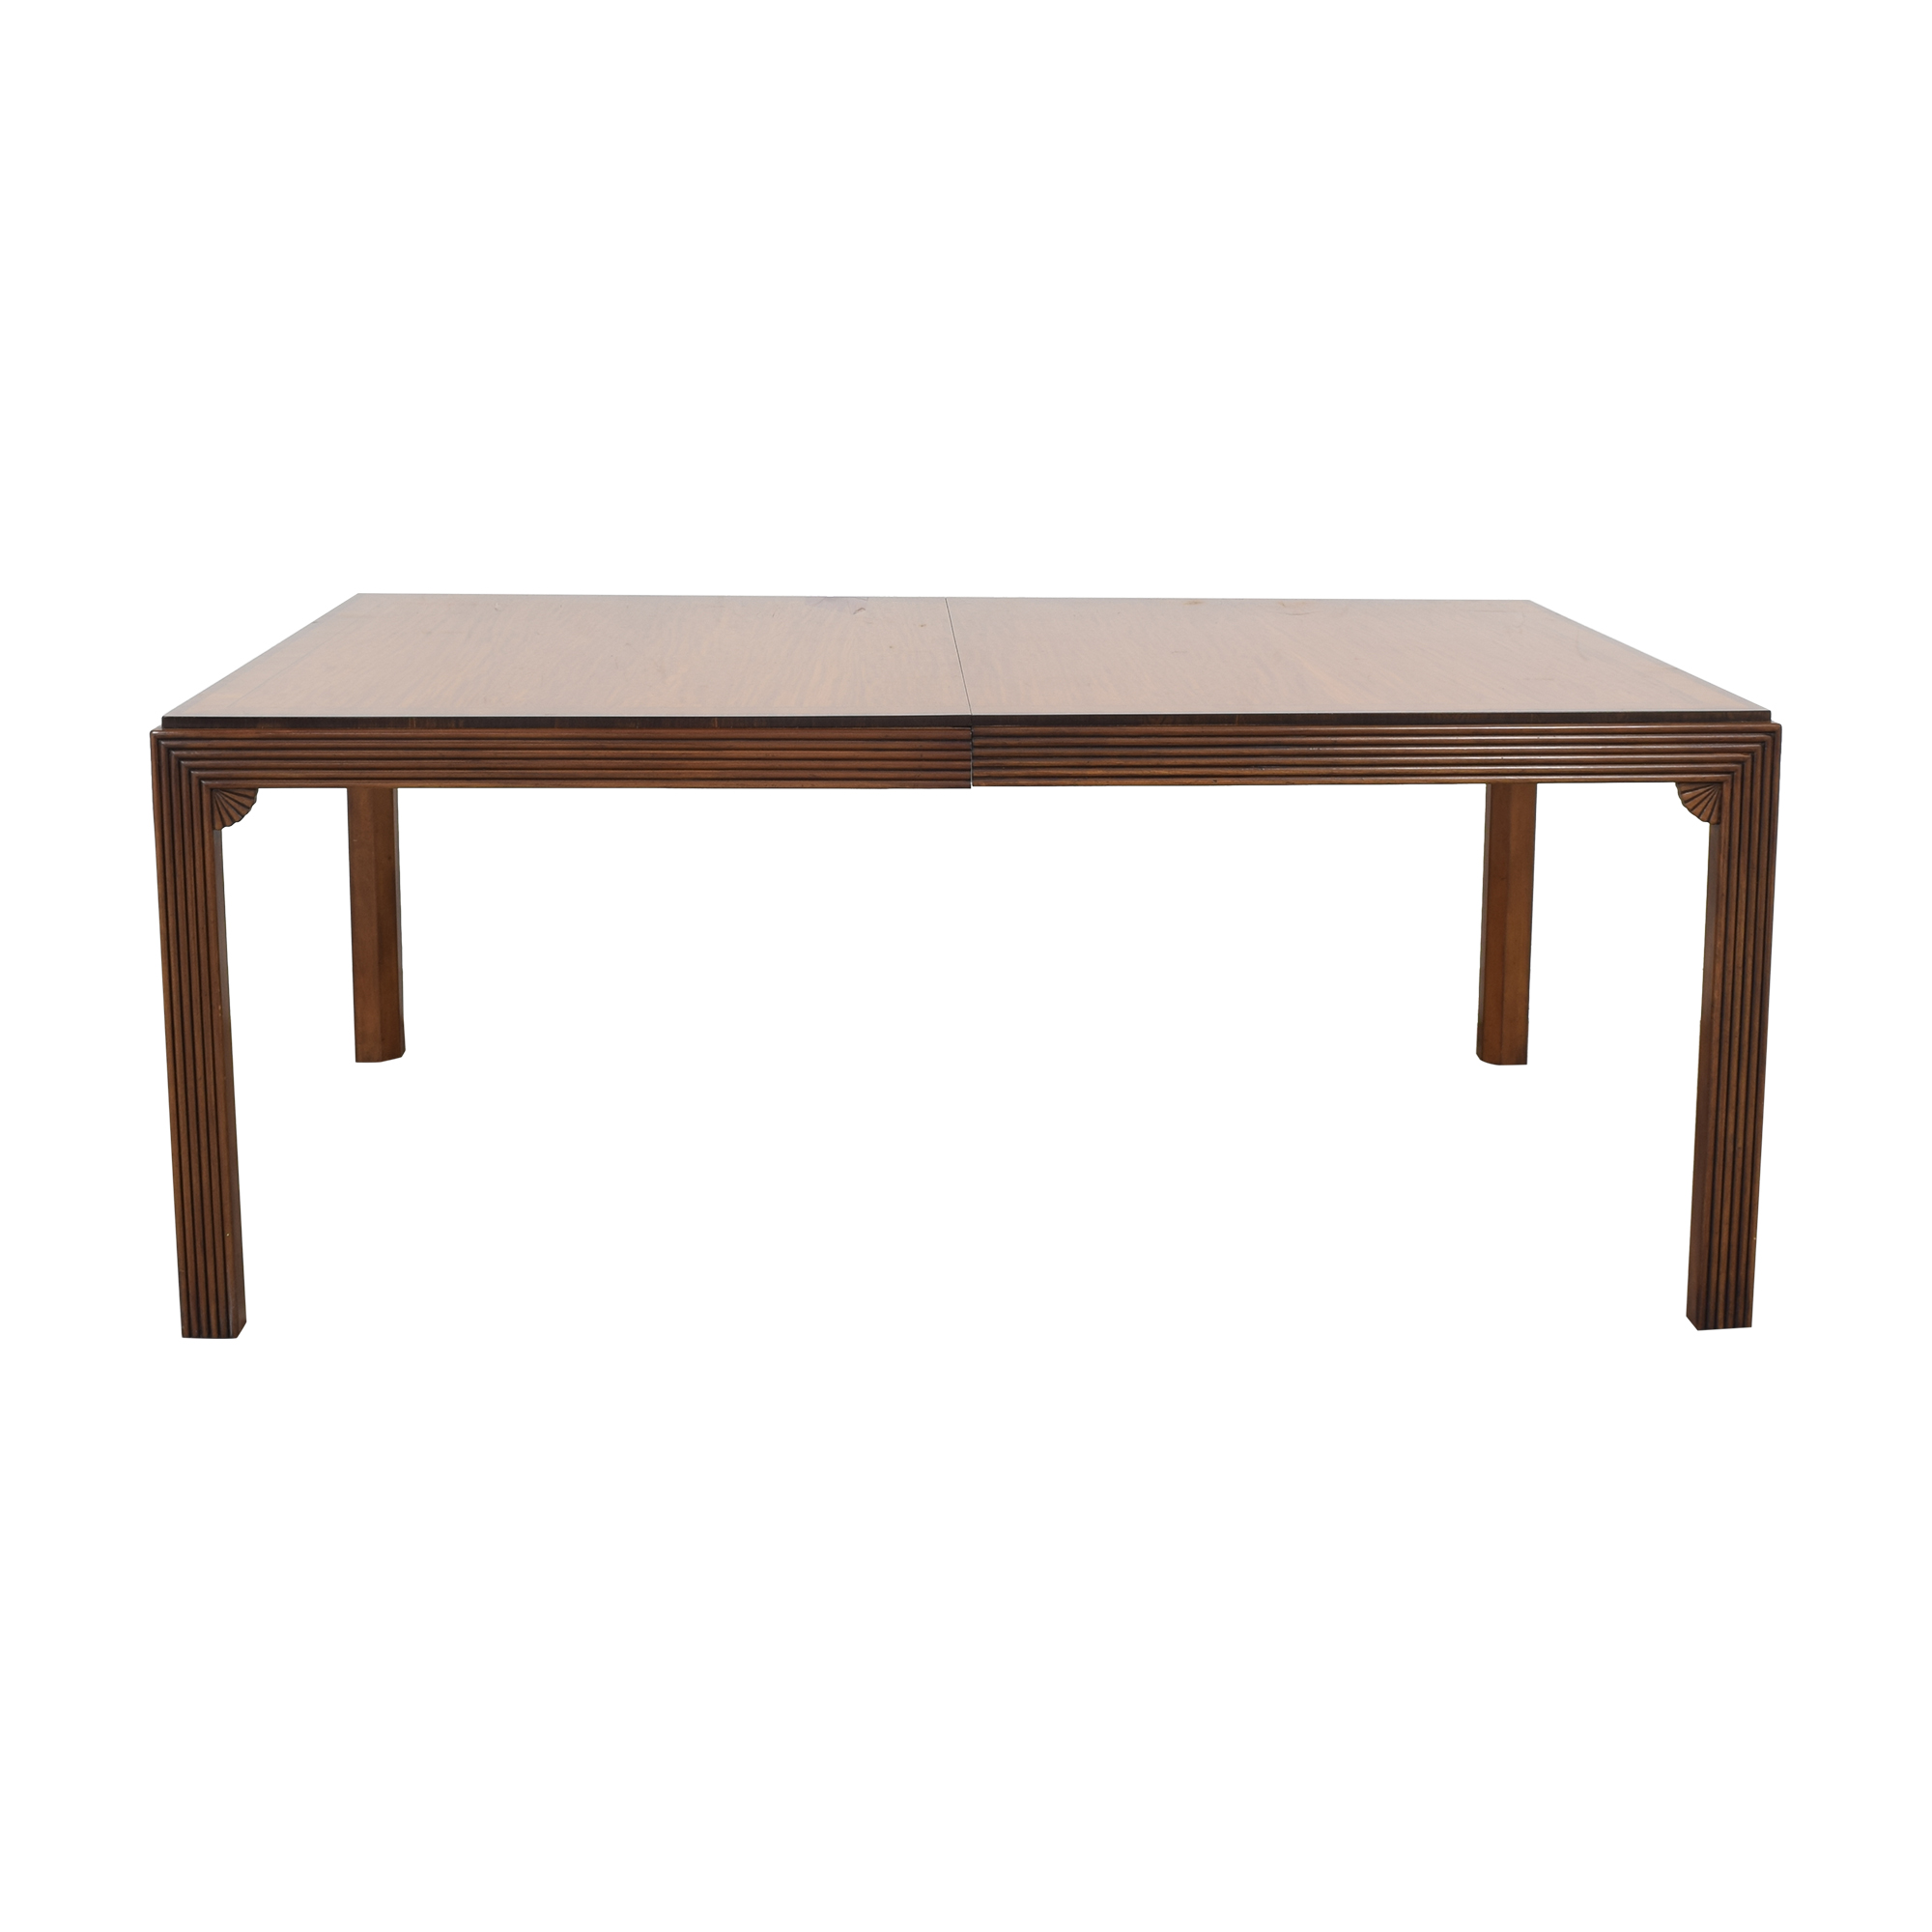 Heritage Heritage Extending Dining Table for sale